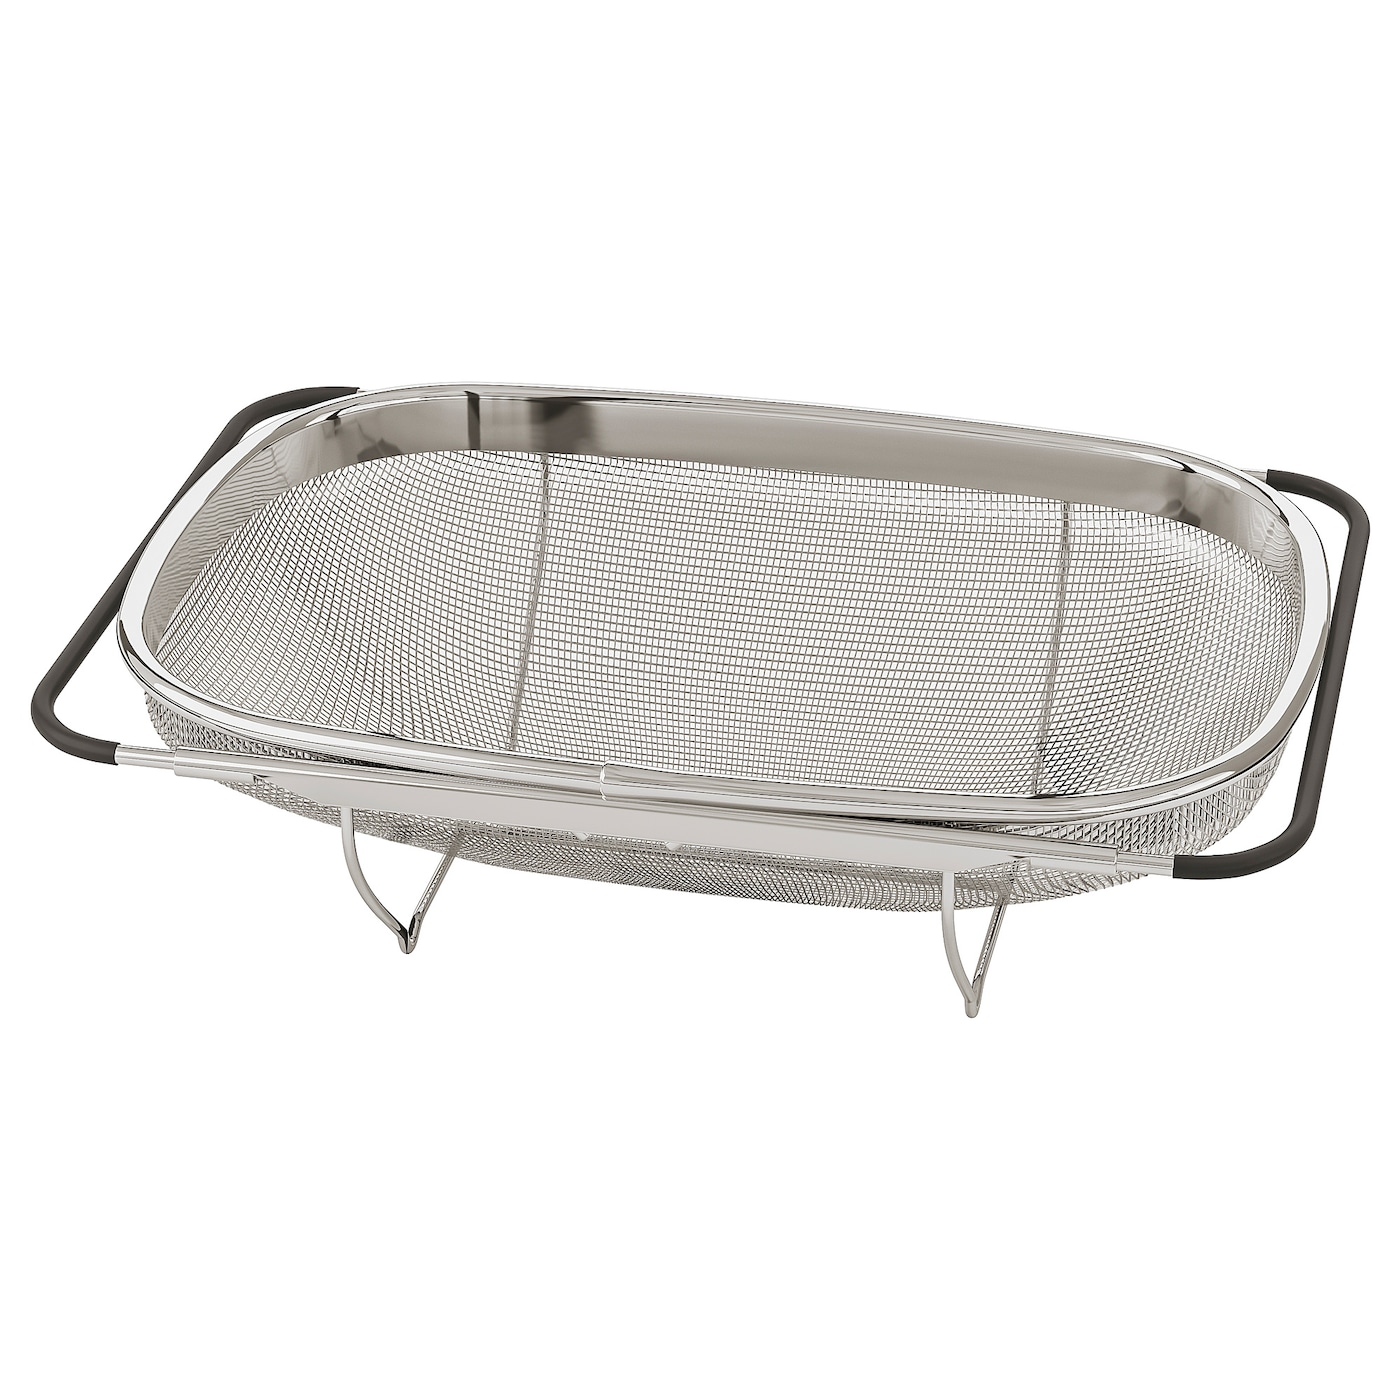 IKEA IDEALISK colander Fits most sink bowls since the handles can be adjusted.